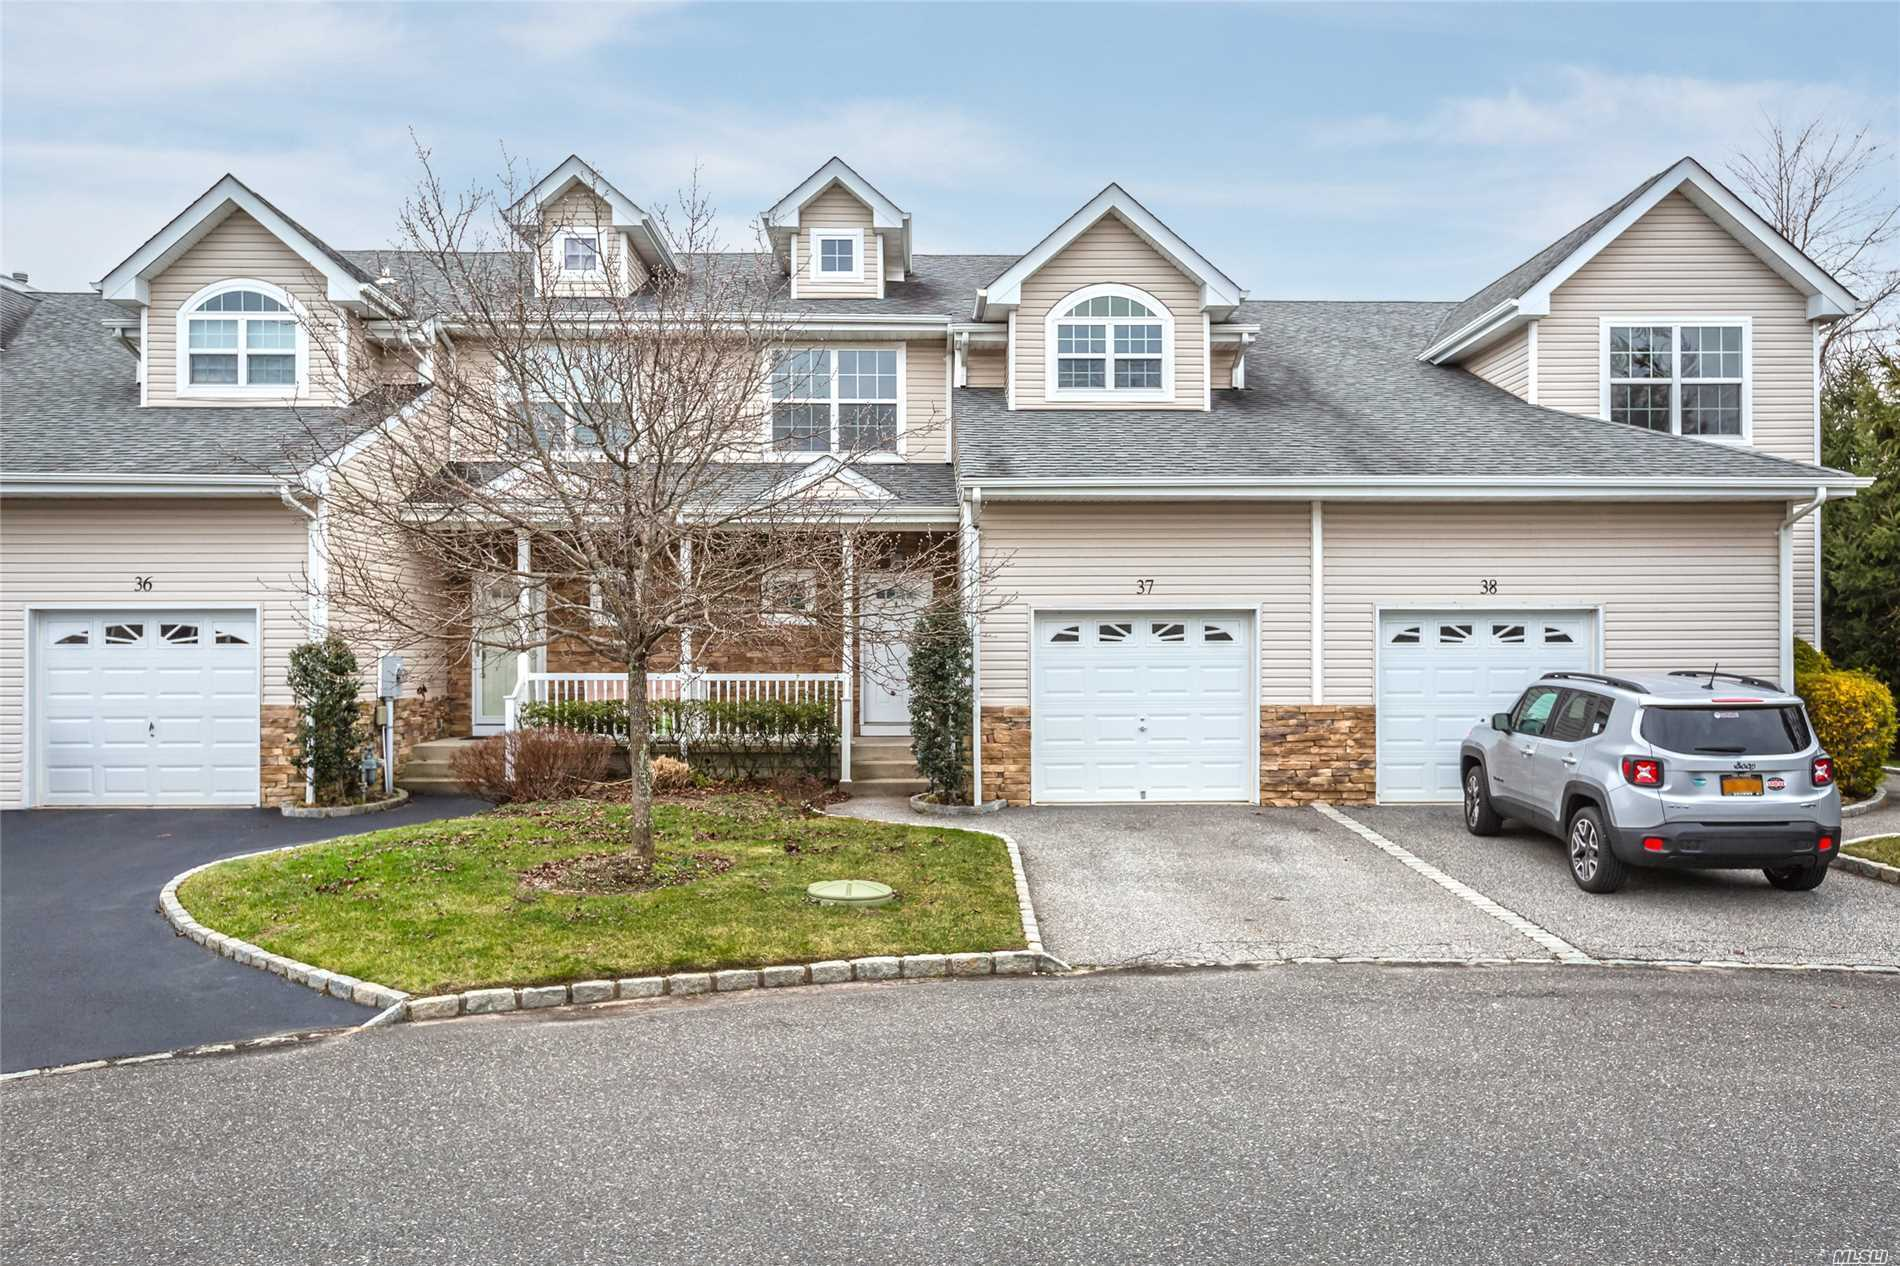 Beautiful 3 Bed, 2.5 Bath Townhome Featuring Open Floor Plan, Eik W/Granite, Stainless, Center Island & Gas Cooking, Lr, Dr, Hw Floors Up & Down, Gas Fireplace, Master Suite W/Wic & Master Bath, Plenty Of Storage, Full Basement, Garage, Gas Heat & Hw, Come See For Yourself...